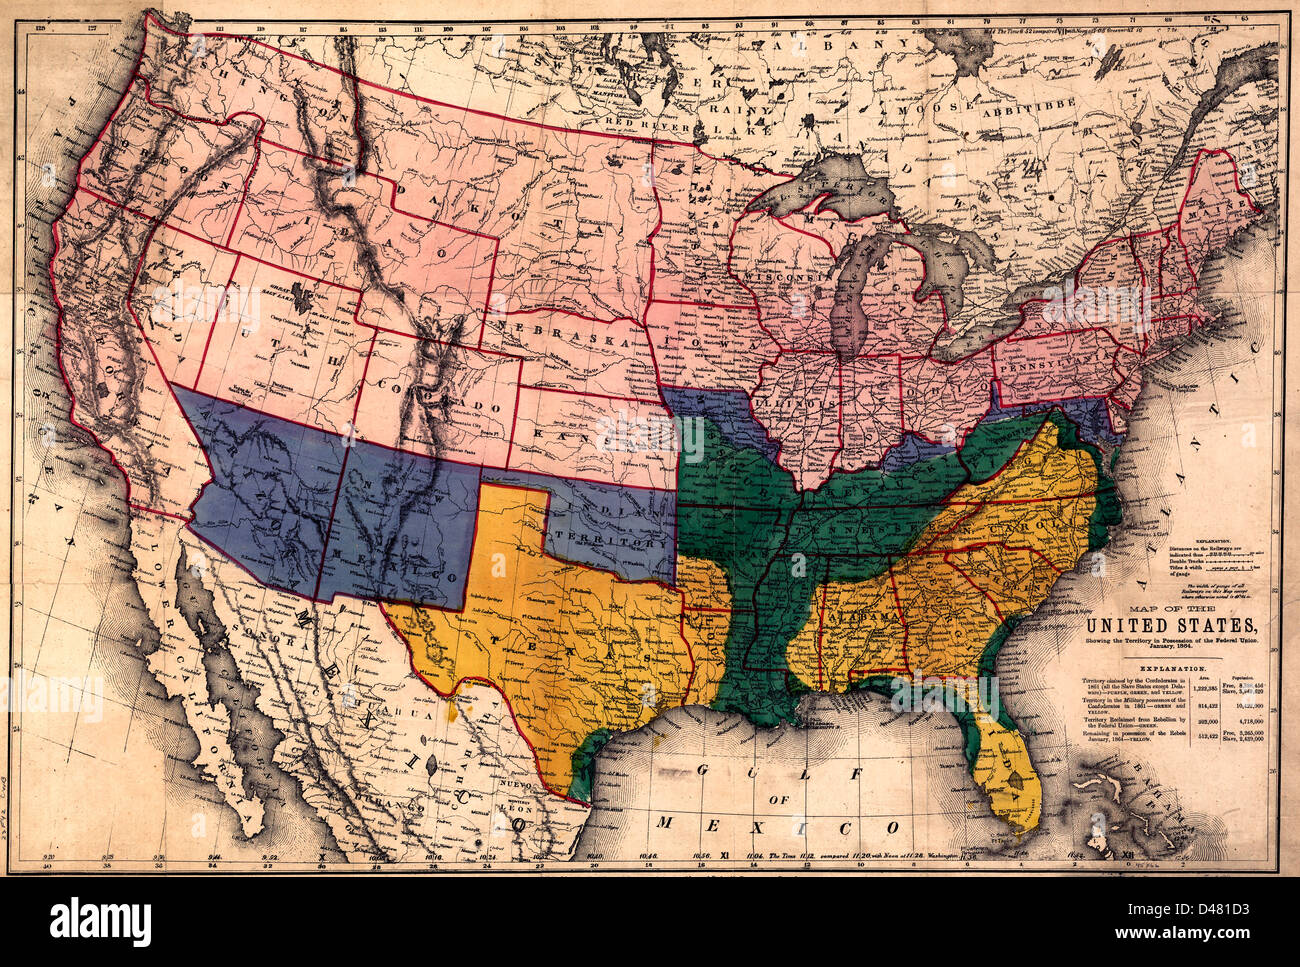 Map of the United States, showing the territory in possession of the Federal Union, January, 1864. - Stock Image